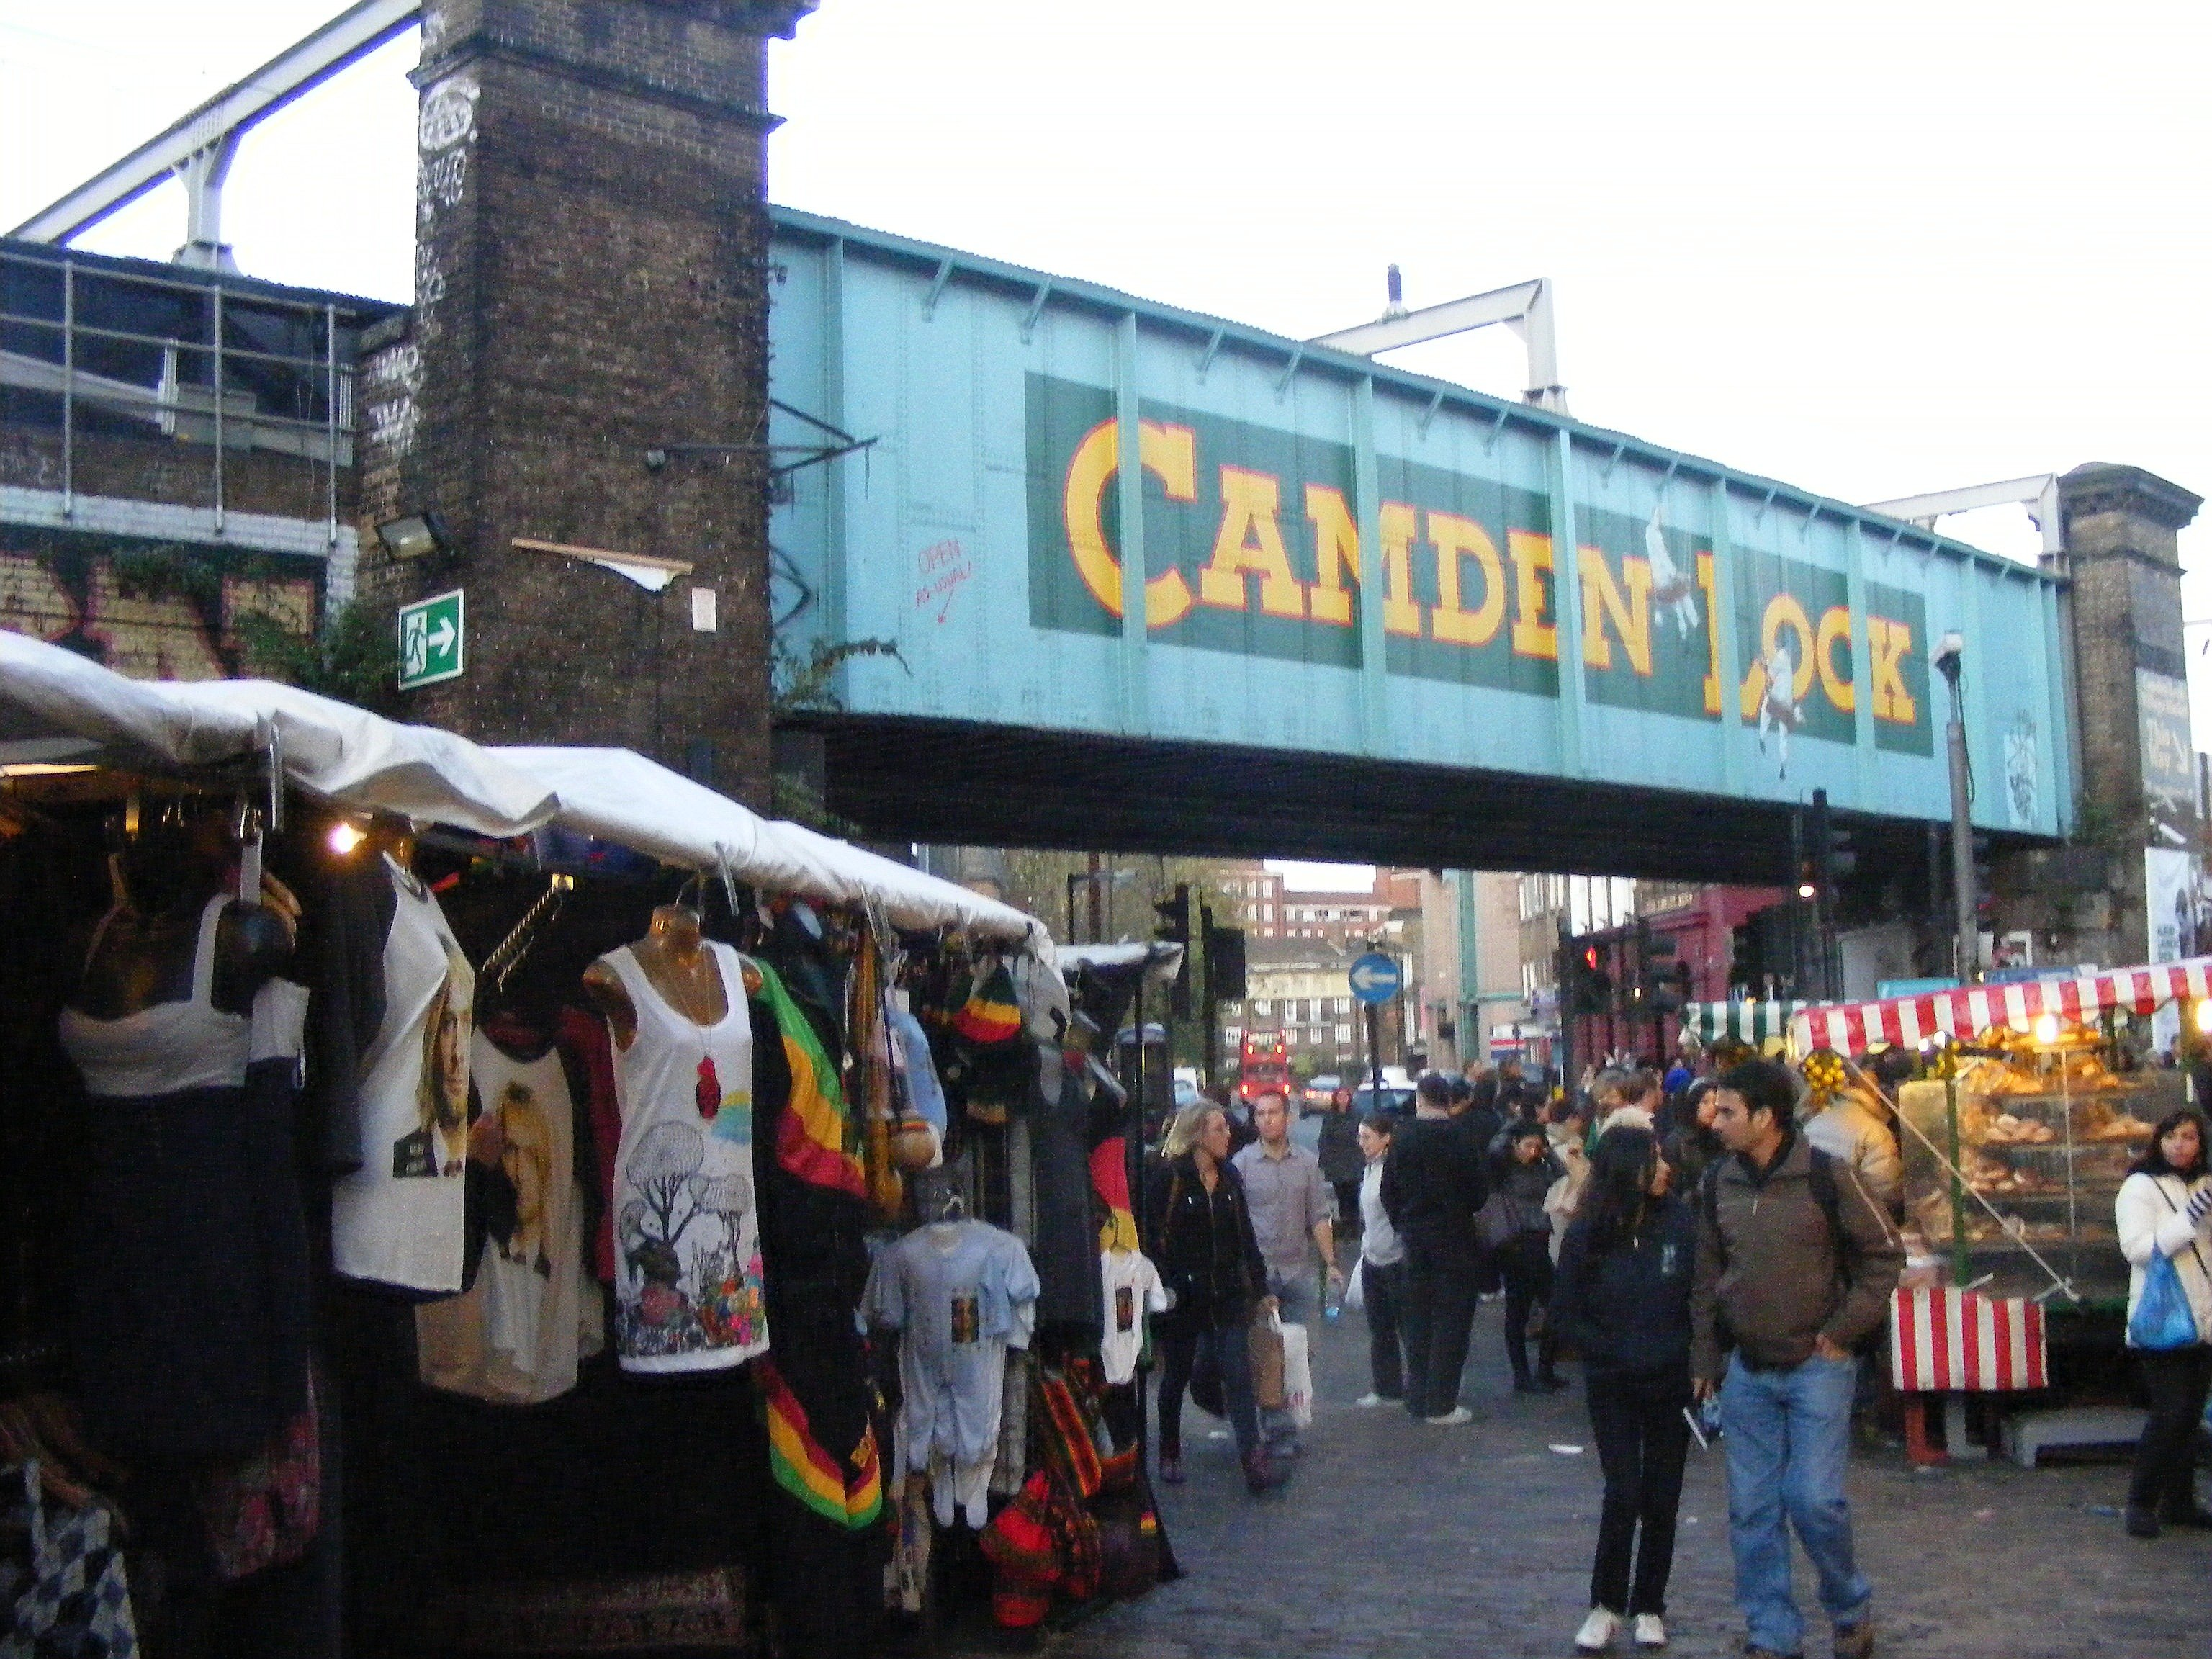 Camden Town Porno everything you know if you live in camden